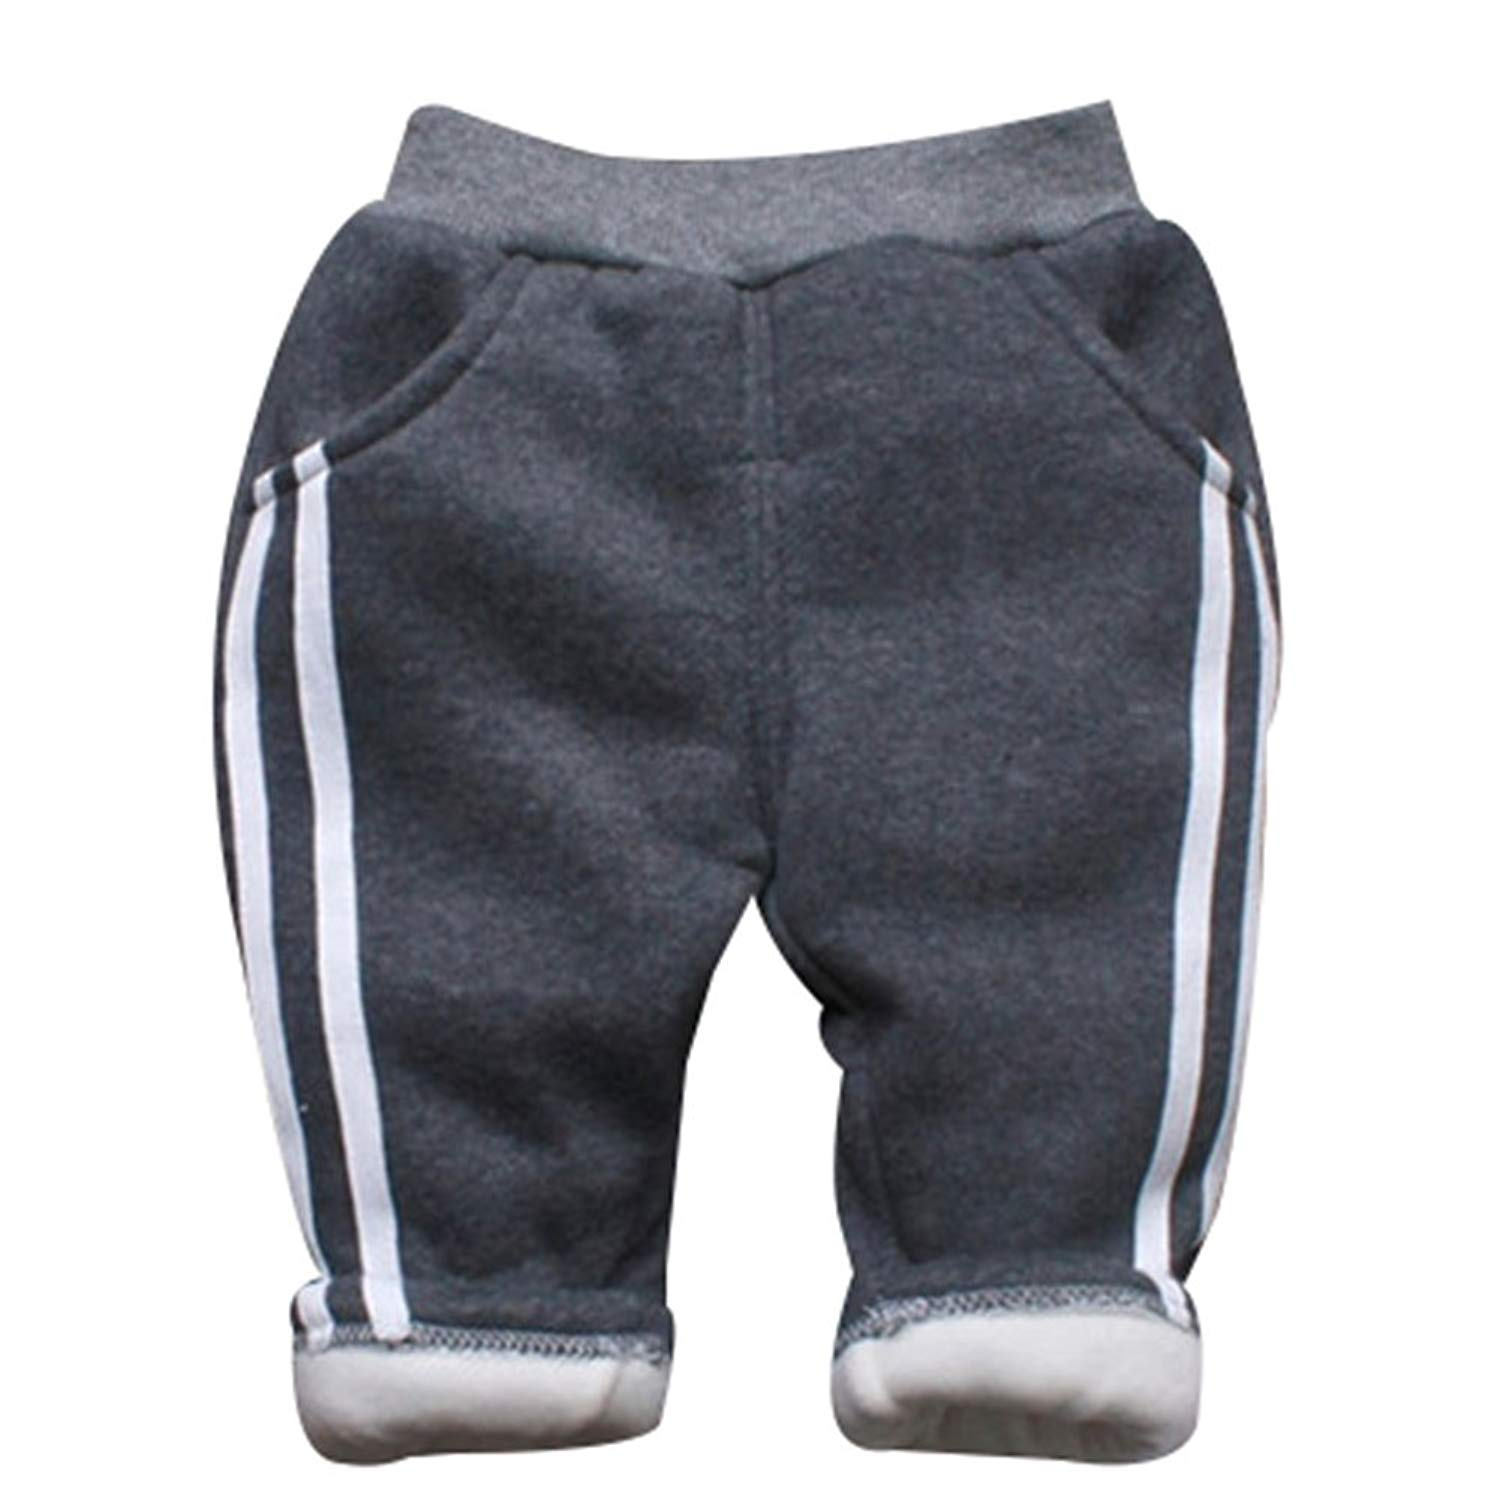 51deb3e349d Get Quotations · TAIYCYXGAN Baby Boys Winter Warm Fleece Lined Pants  Toddler Thicken Pants Elastic Casual Jogger Kids Trouser